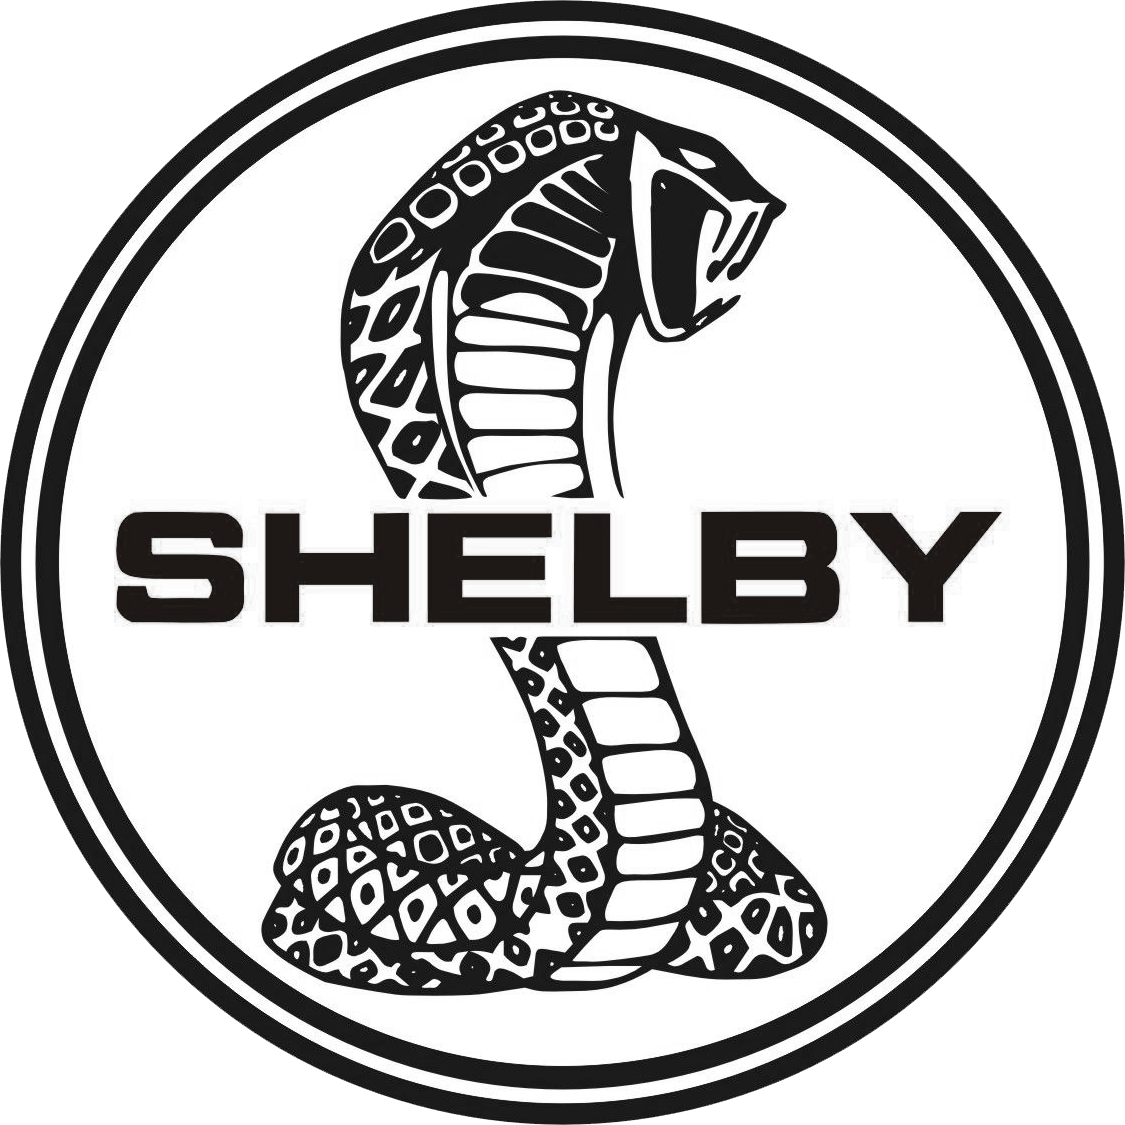 Shelby Cobra - Shelby PNG